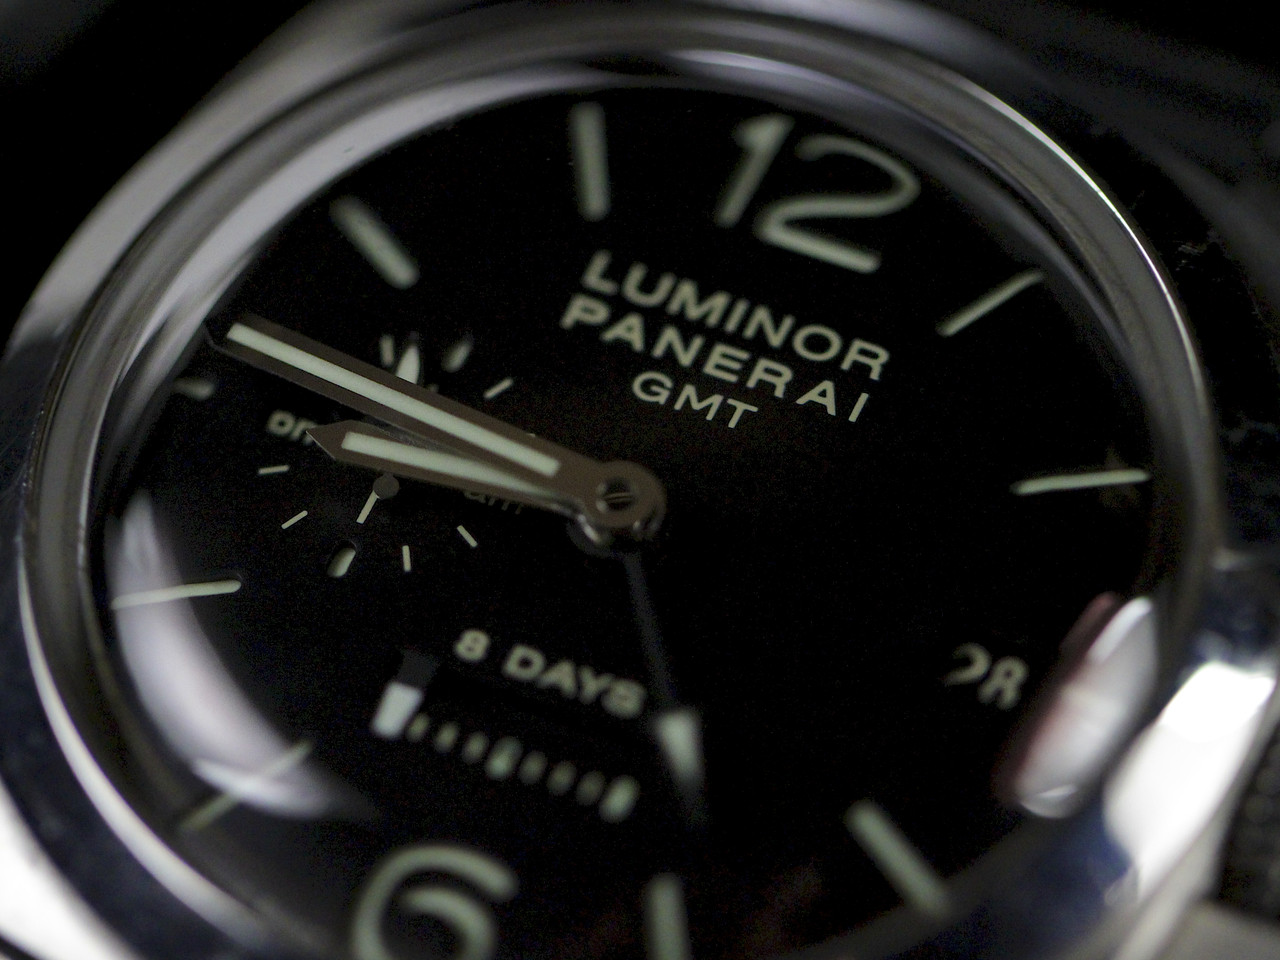 Dial Picture- Pre-Owned Panerai Watch - Luminor 1950 8 Days GMT Acciaio PAM00233 - for sale online and instore Legend of Time - Chicago Watch Center